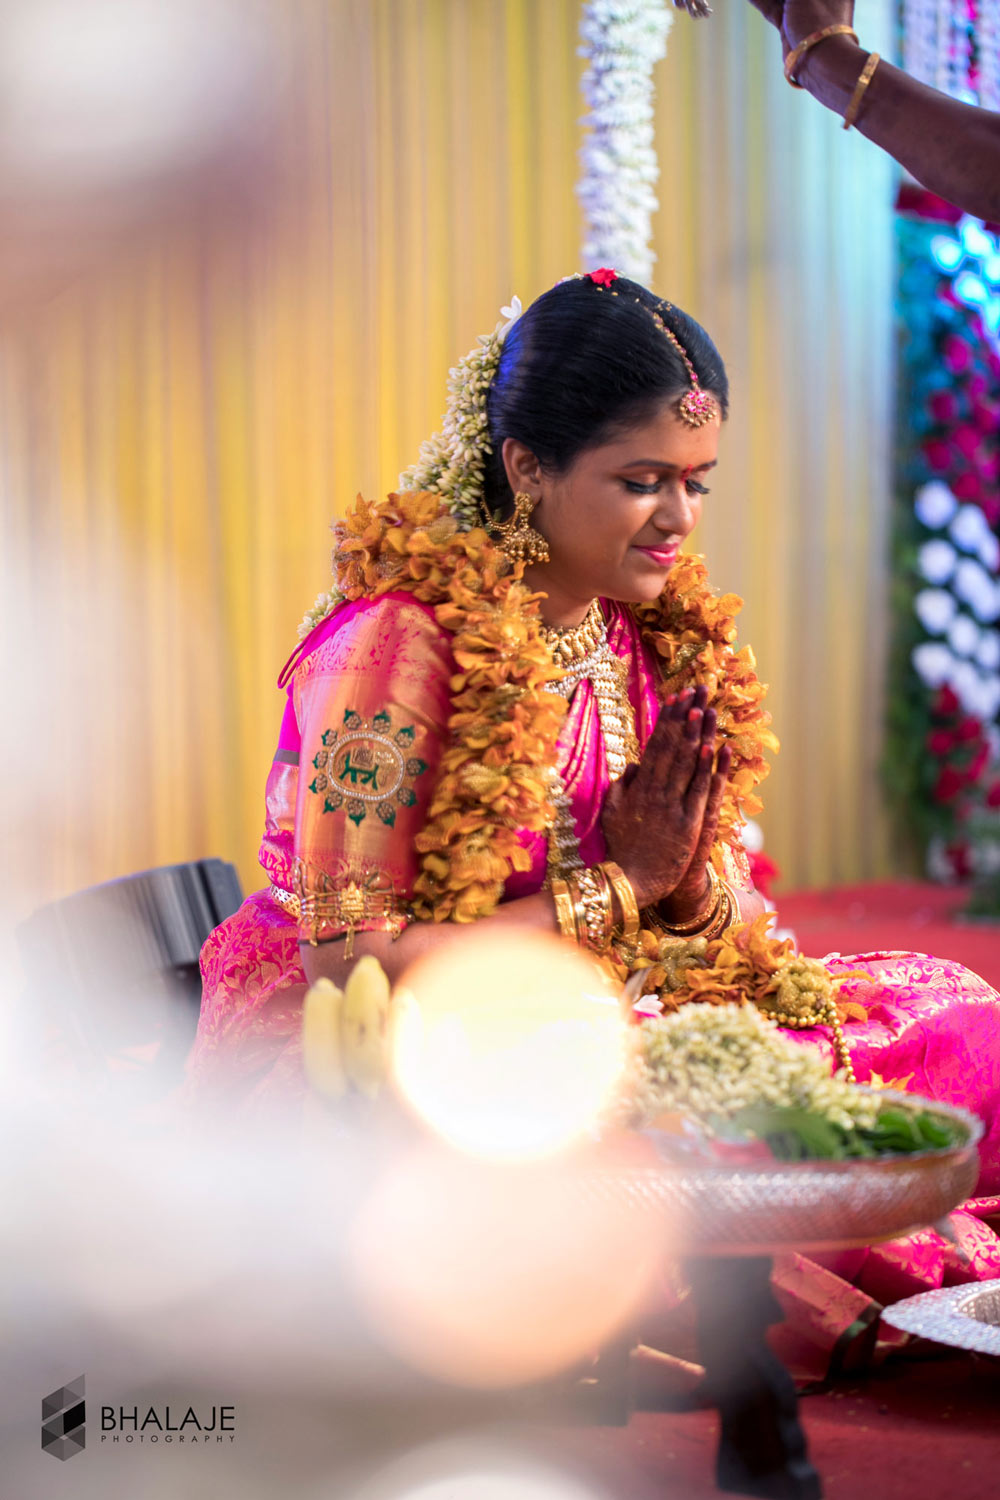 Outdoor Wedding Photography, Malayali Brahmin Wedding Photography, Kannada Brahmin Wedding Photography, Manhwa brahmin Wedding Photography, Inter Caste marriage Photography, North Indian Wedding Photography,